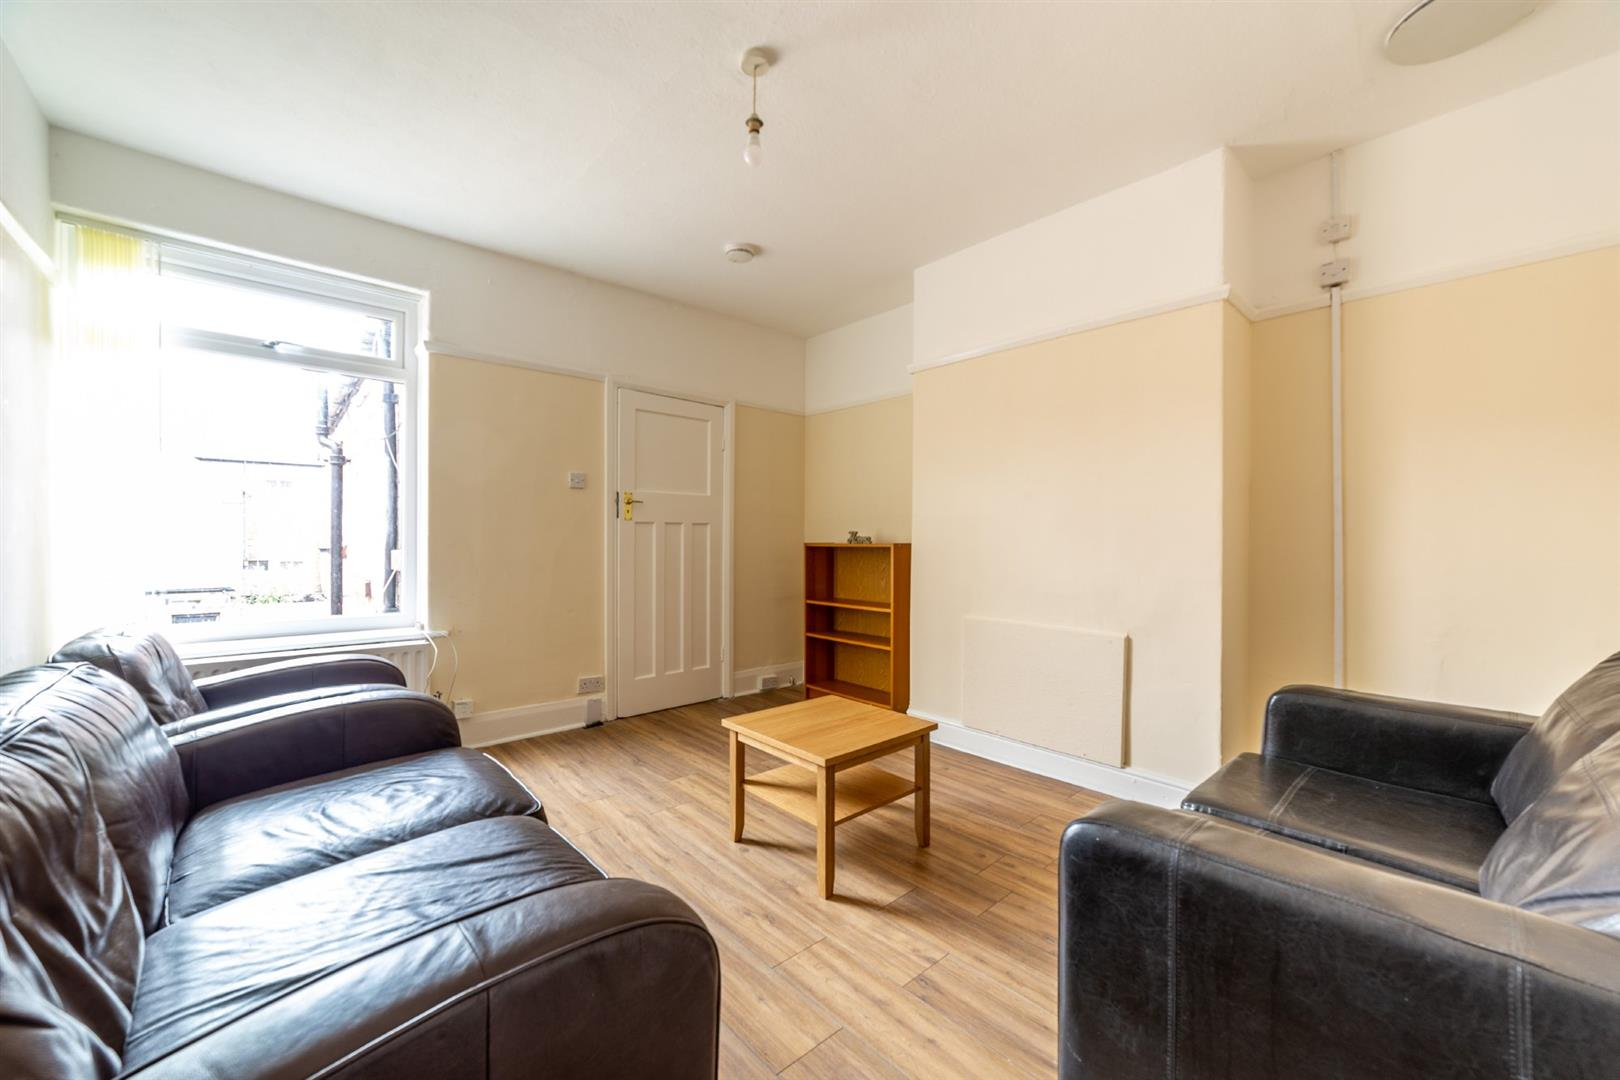 3 bed flat to rent in Newcastle Upon Tyne, NE2 2JS  - Property Image 4